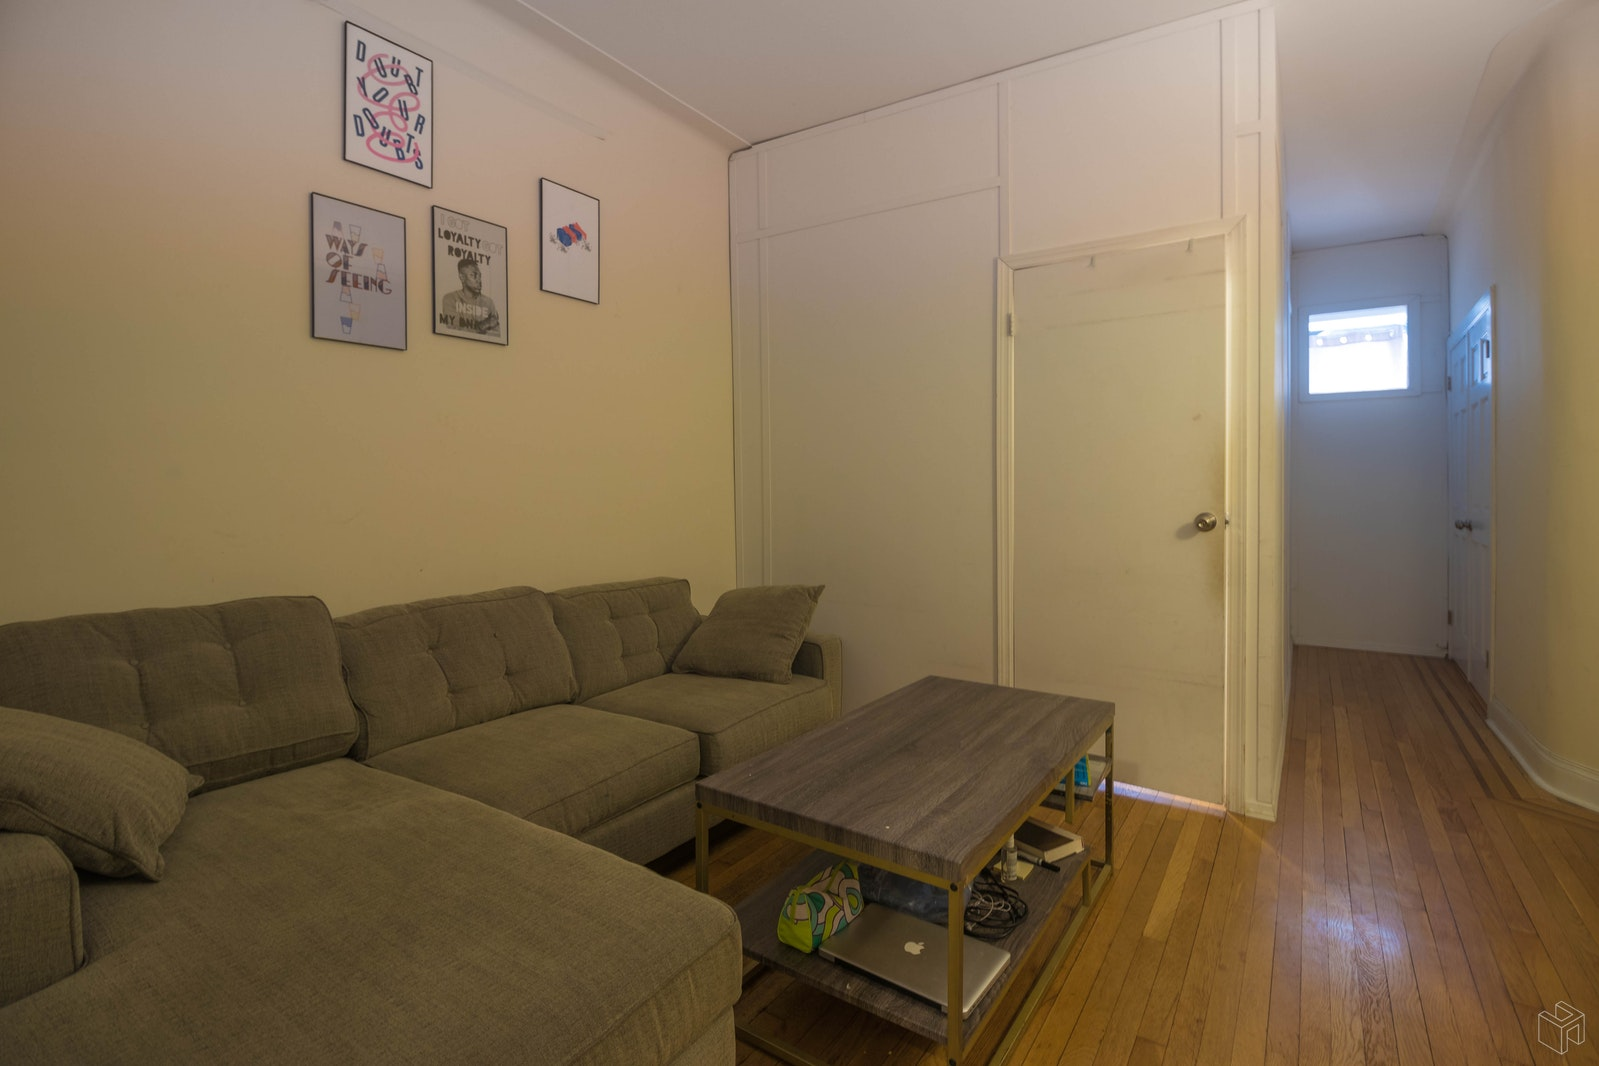 131 East 29th Street 2, Gramercy Park, NYC, 10016, Price Not Disclosed, Rented Property, Halstead Real Estate, Photo 5